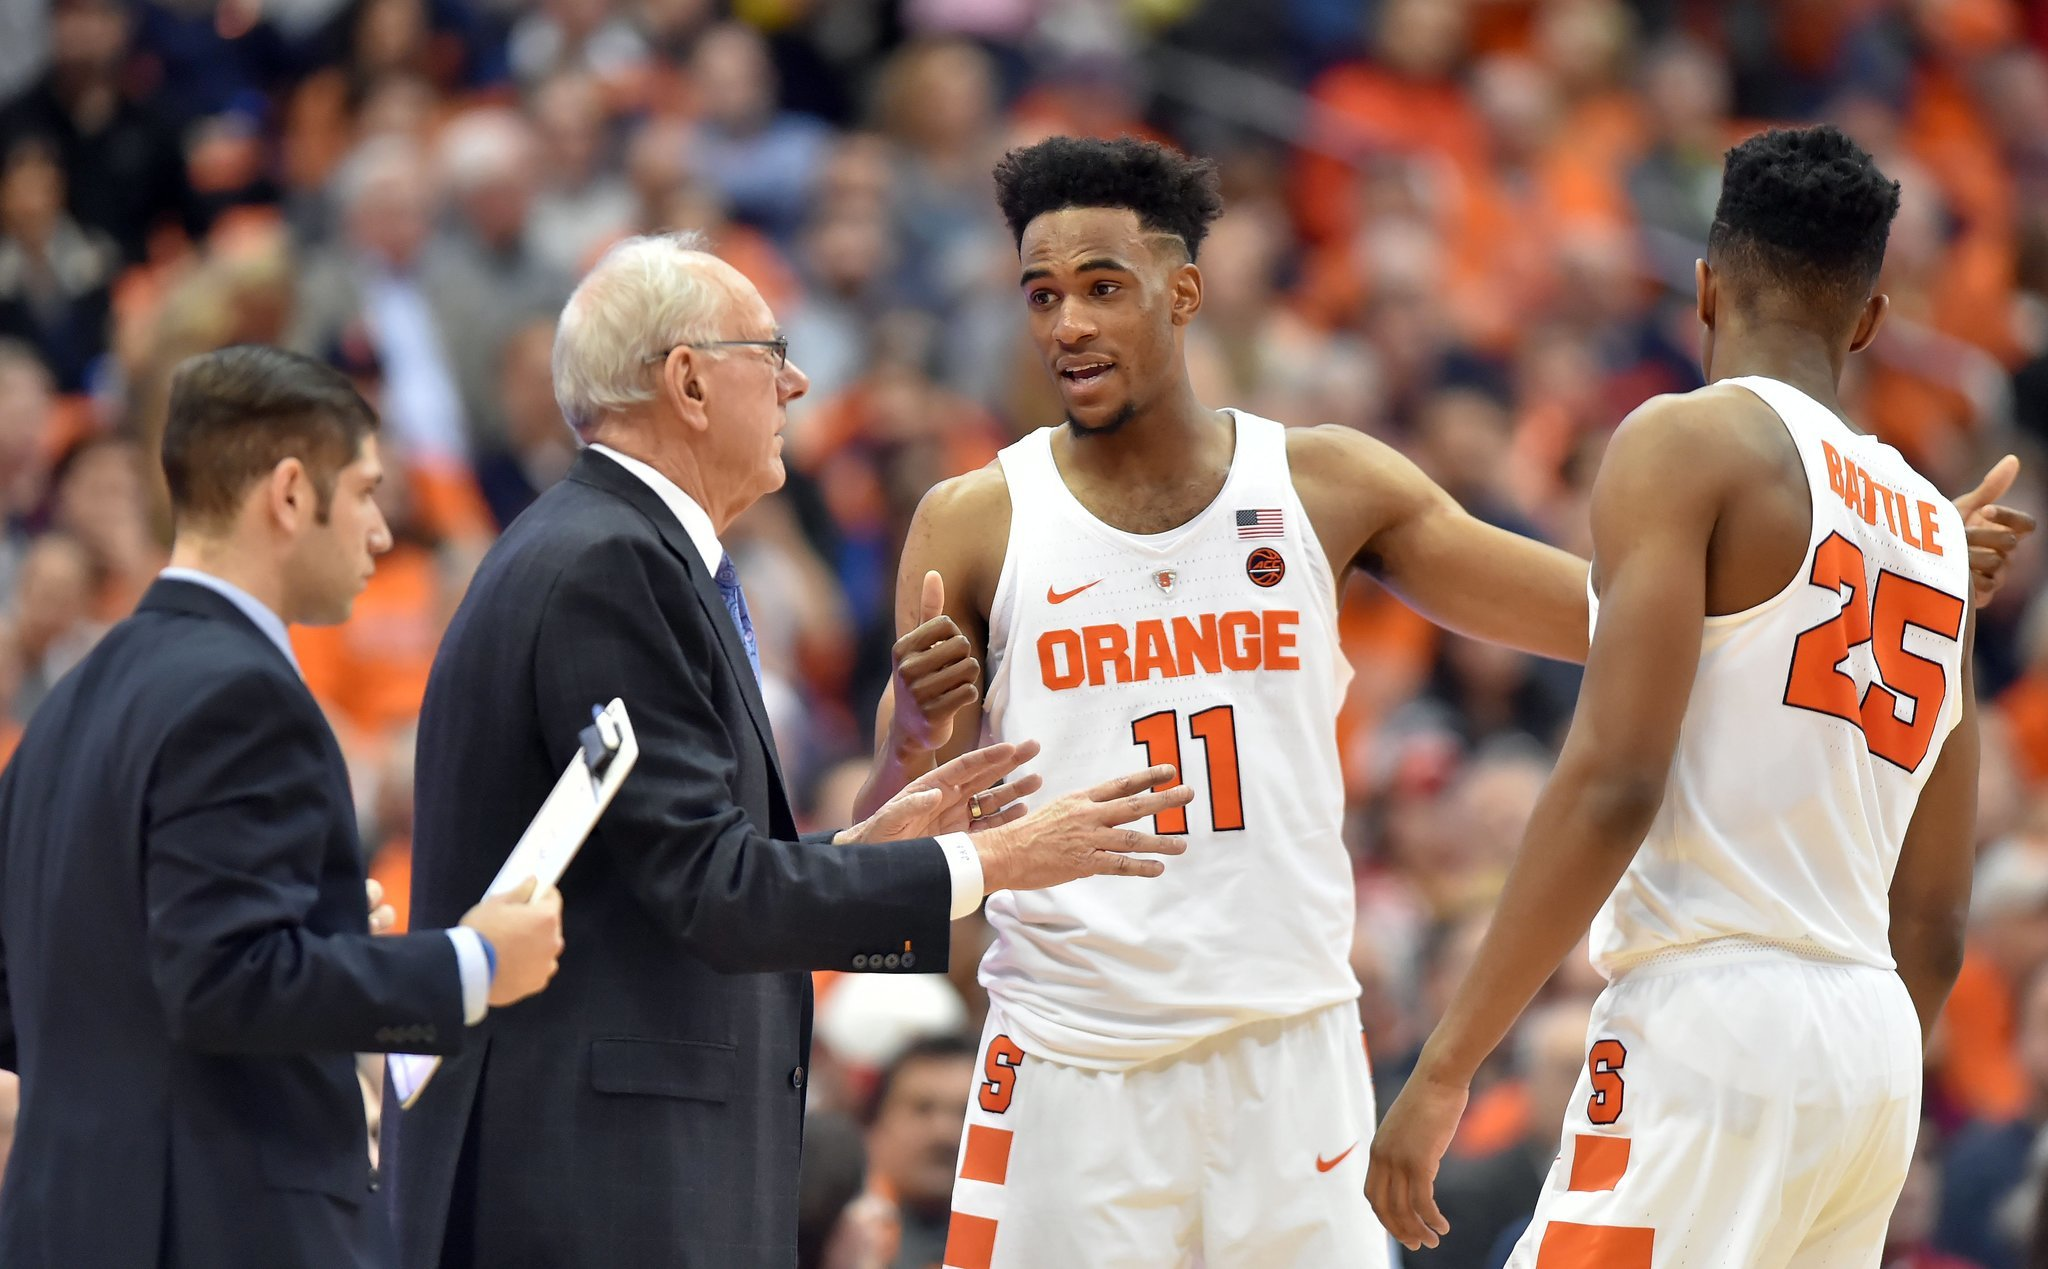 Syracuse basketball vs. No. 2 Kansas: 10 things to watch for ...